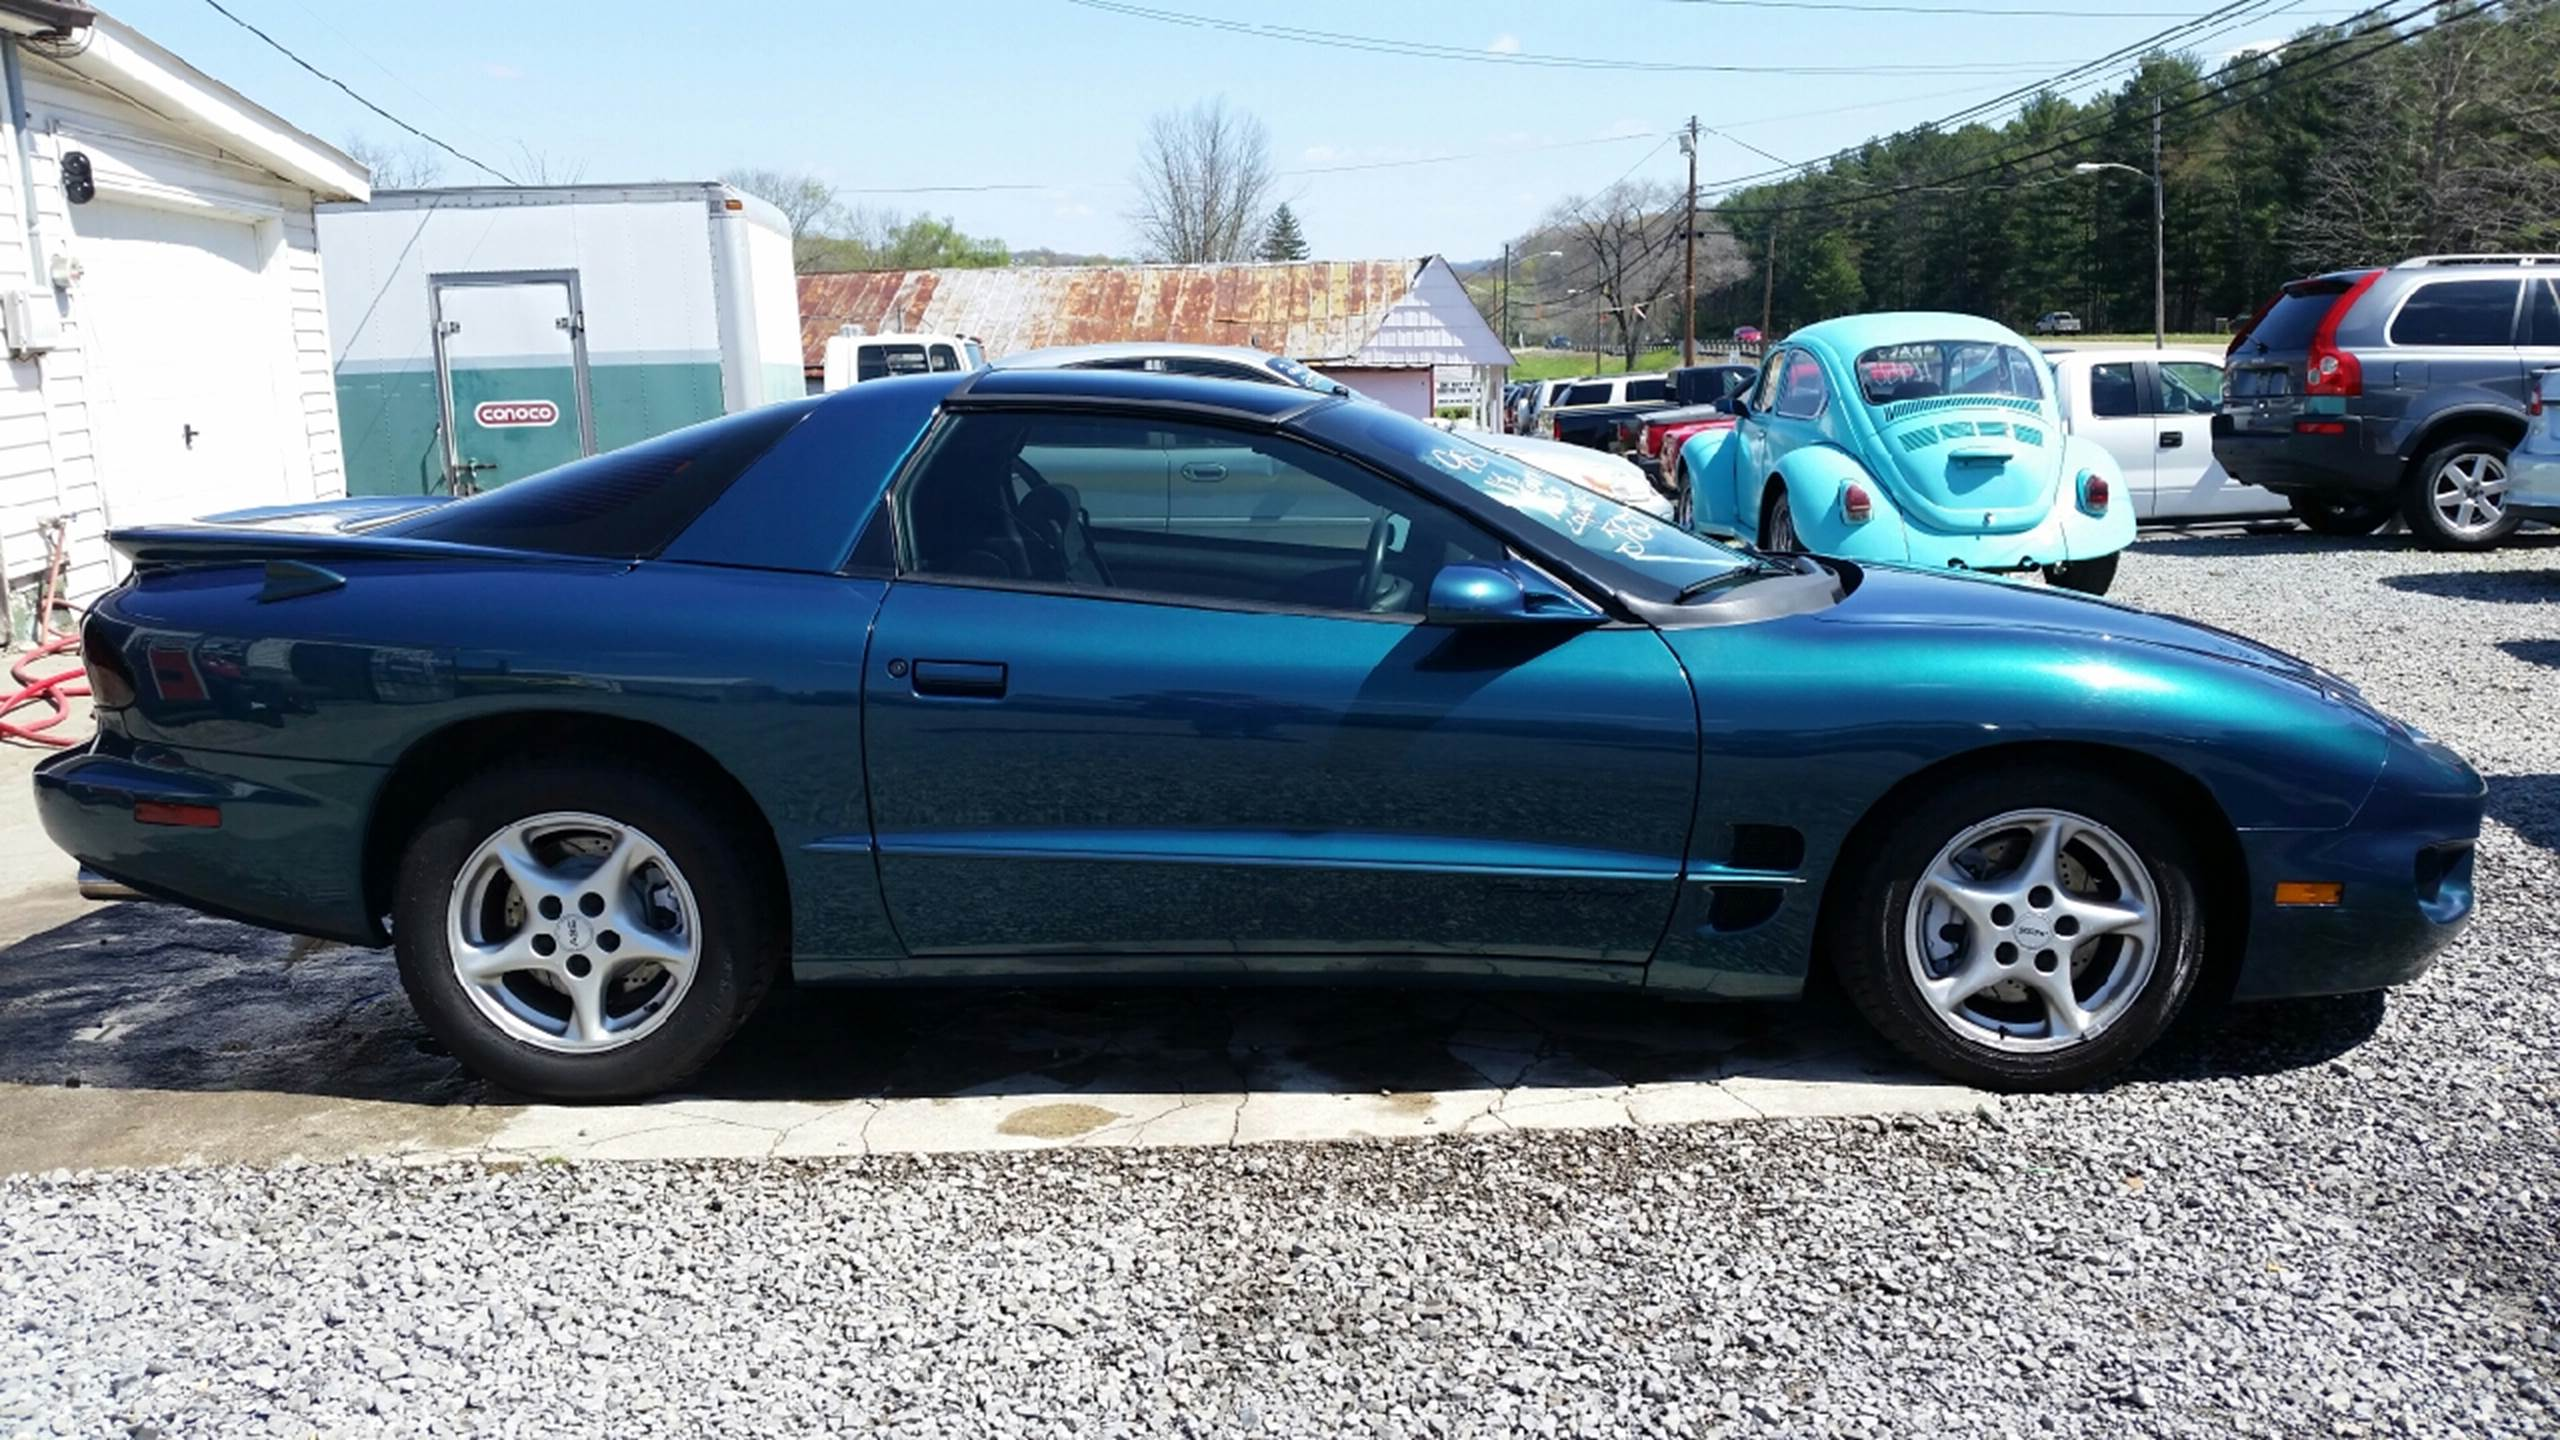 1998 Pontiac Firebird for sale in Mount Carmel, TN